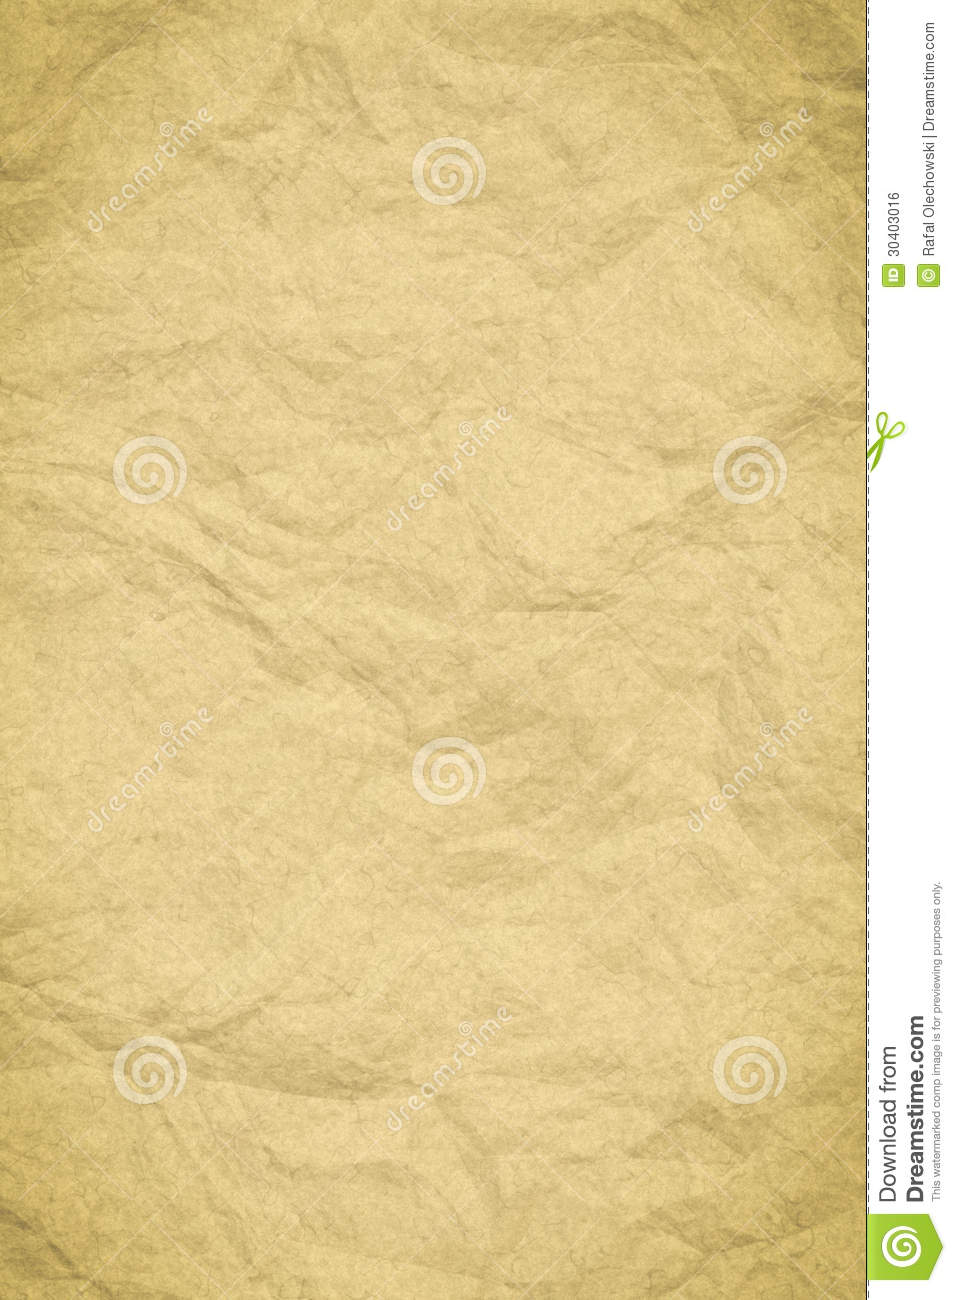 old paper template texture stock illustration illustration of brown